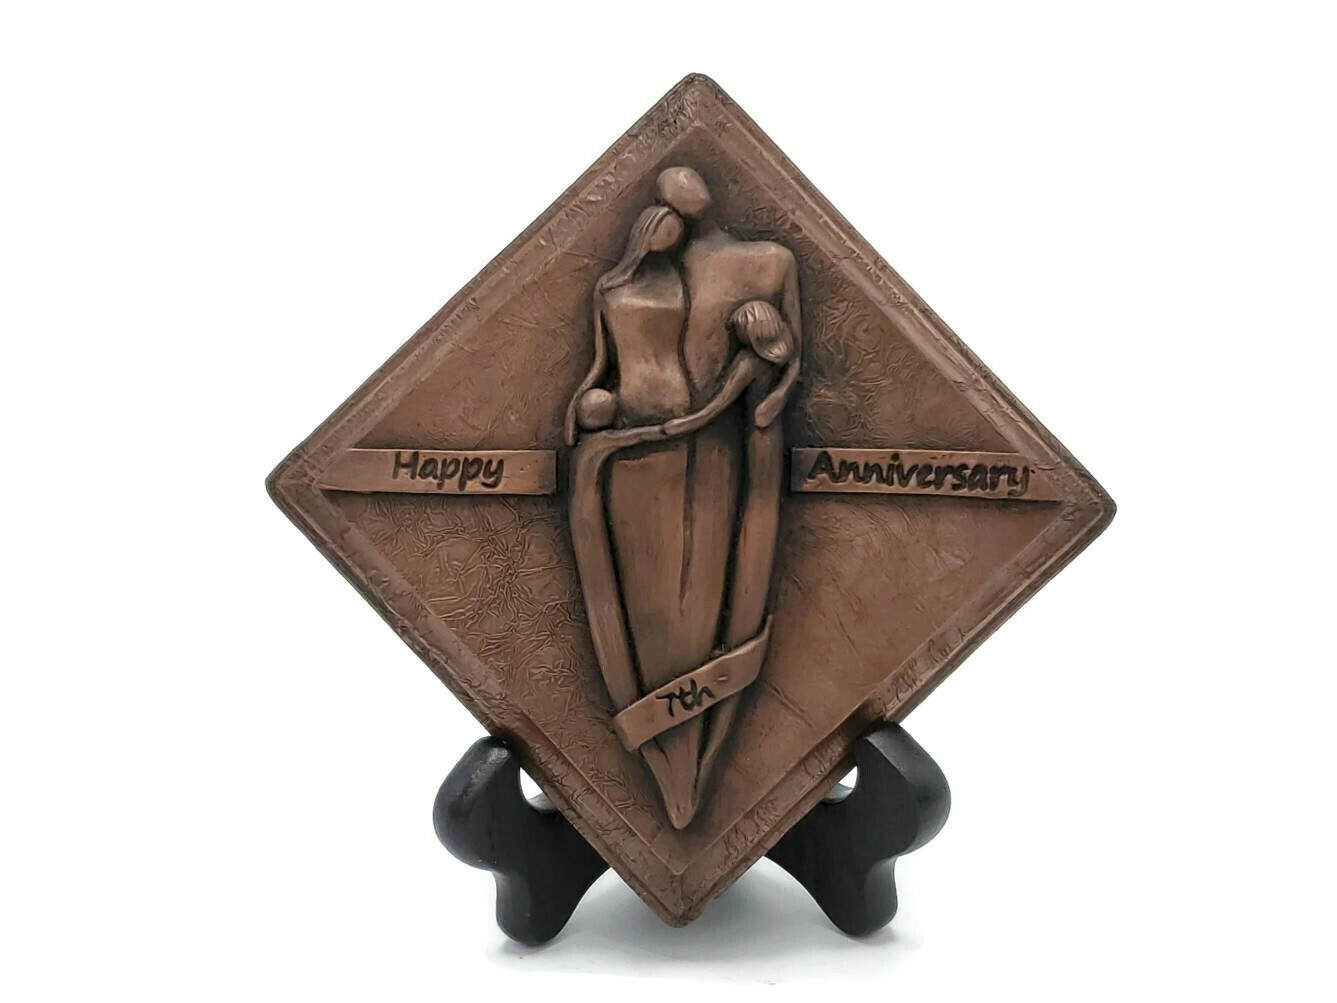 7th Anniversary Copper Plaque Family Sculpture with a Boy and Girl